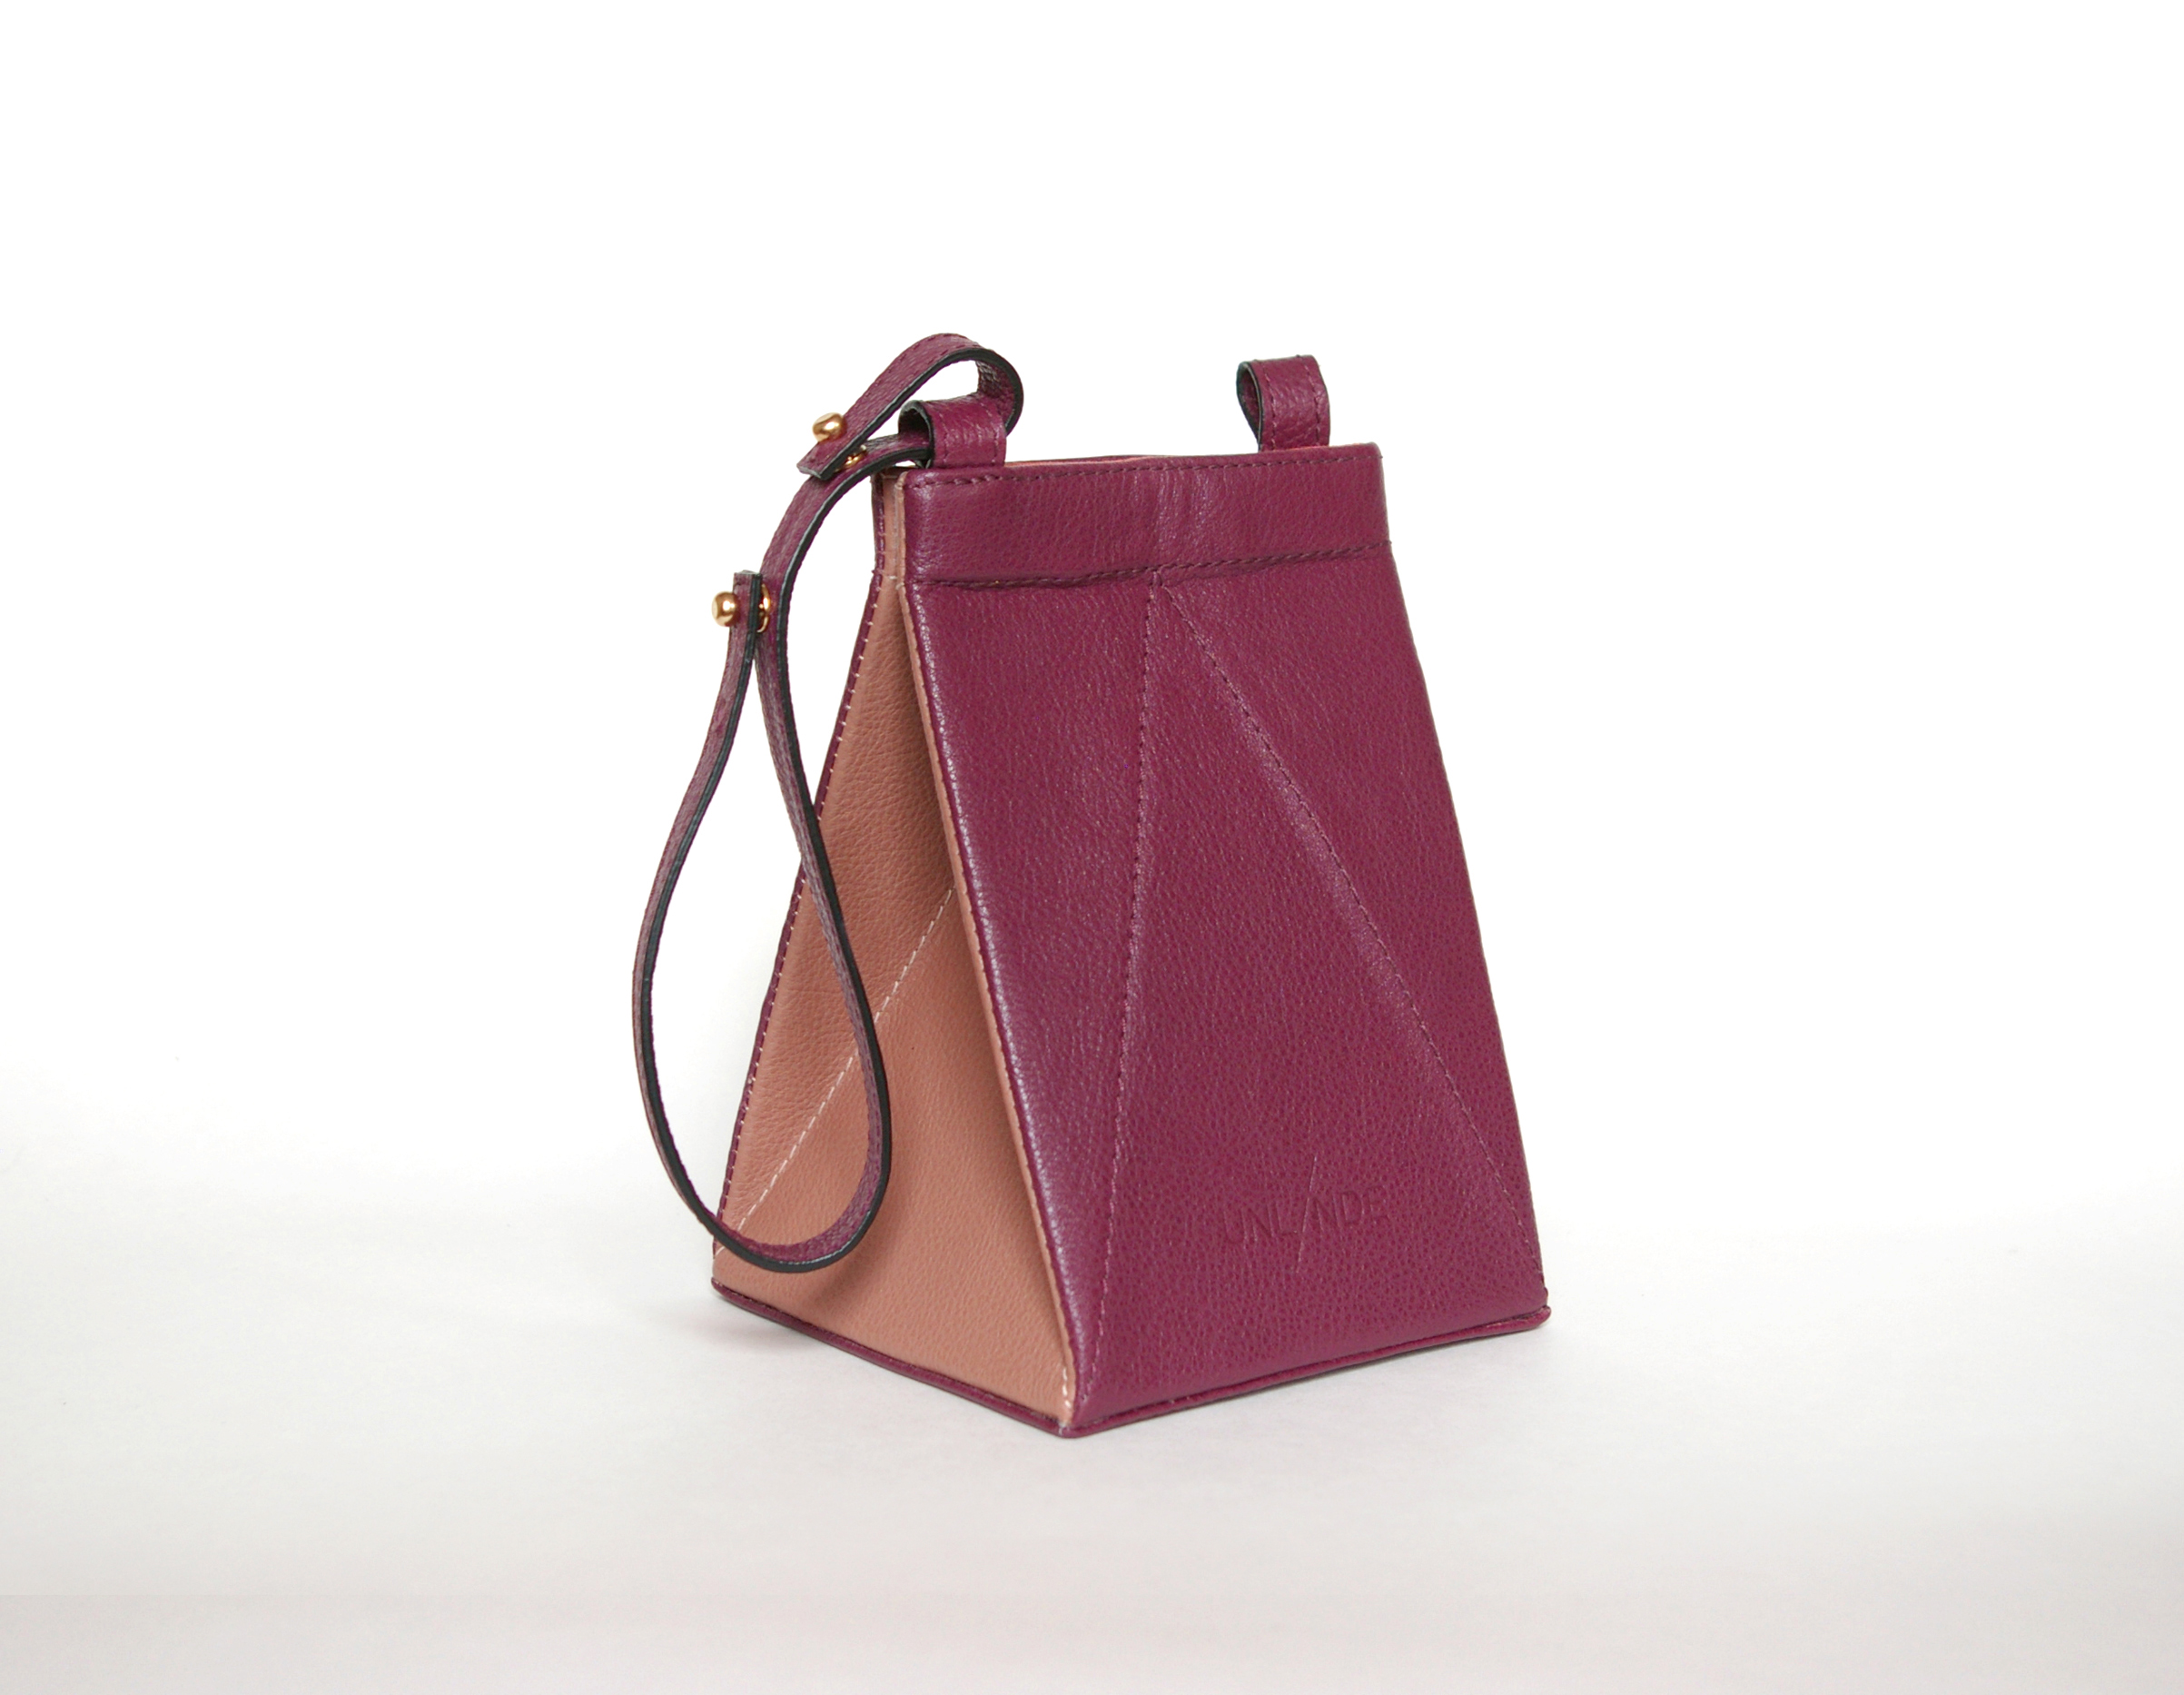 SOLD OUT  TETR4BAG Burgundy/Beige $360